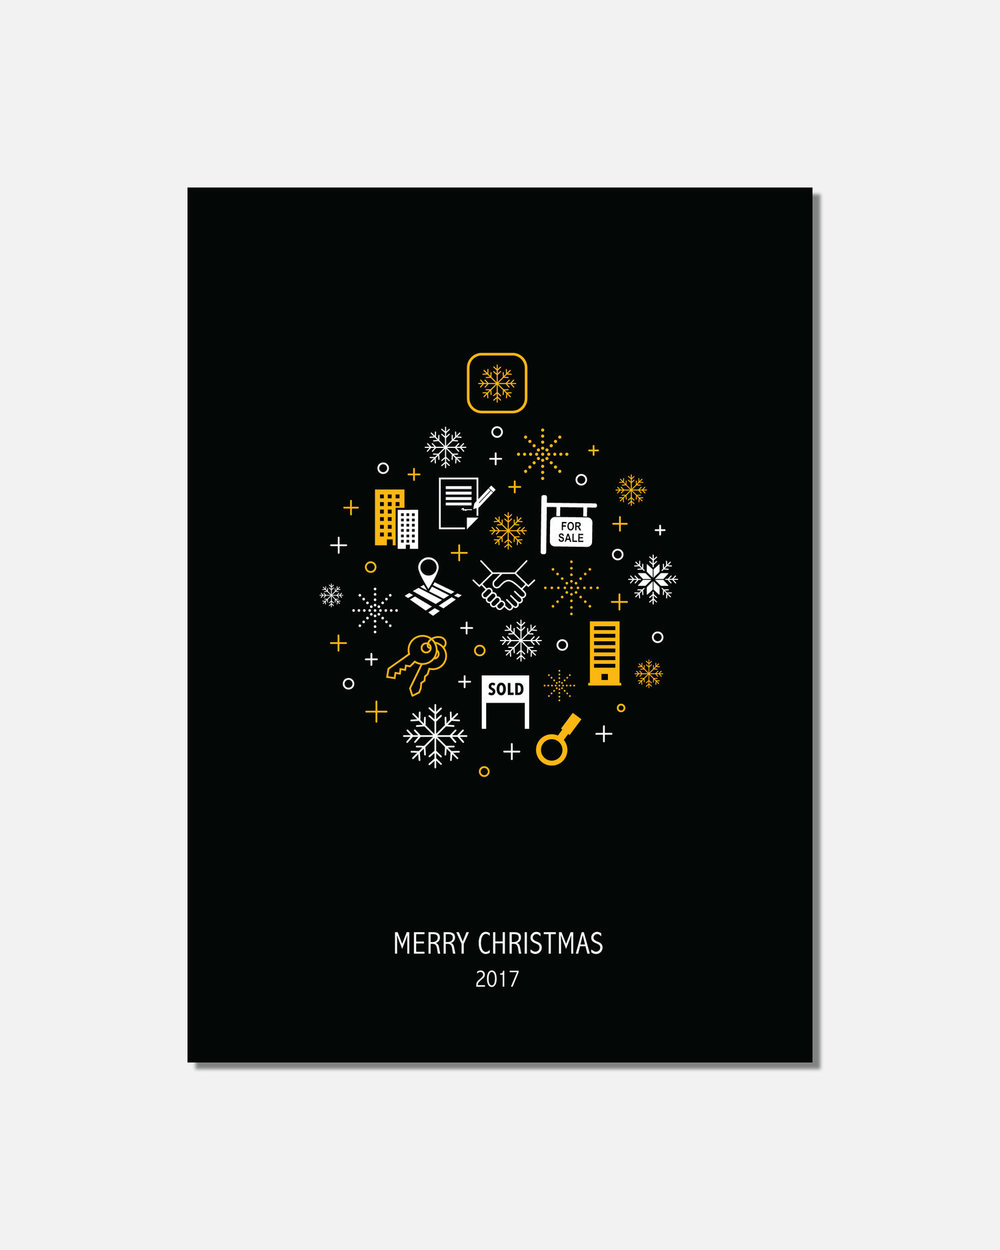 Graham+&+Co.+Christmas+Card_Mockup.jpg